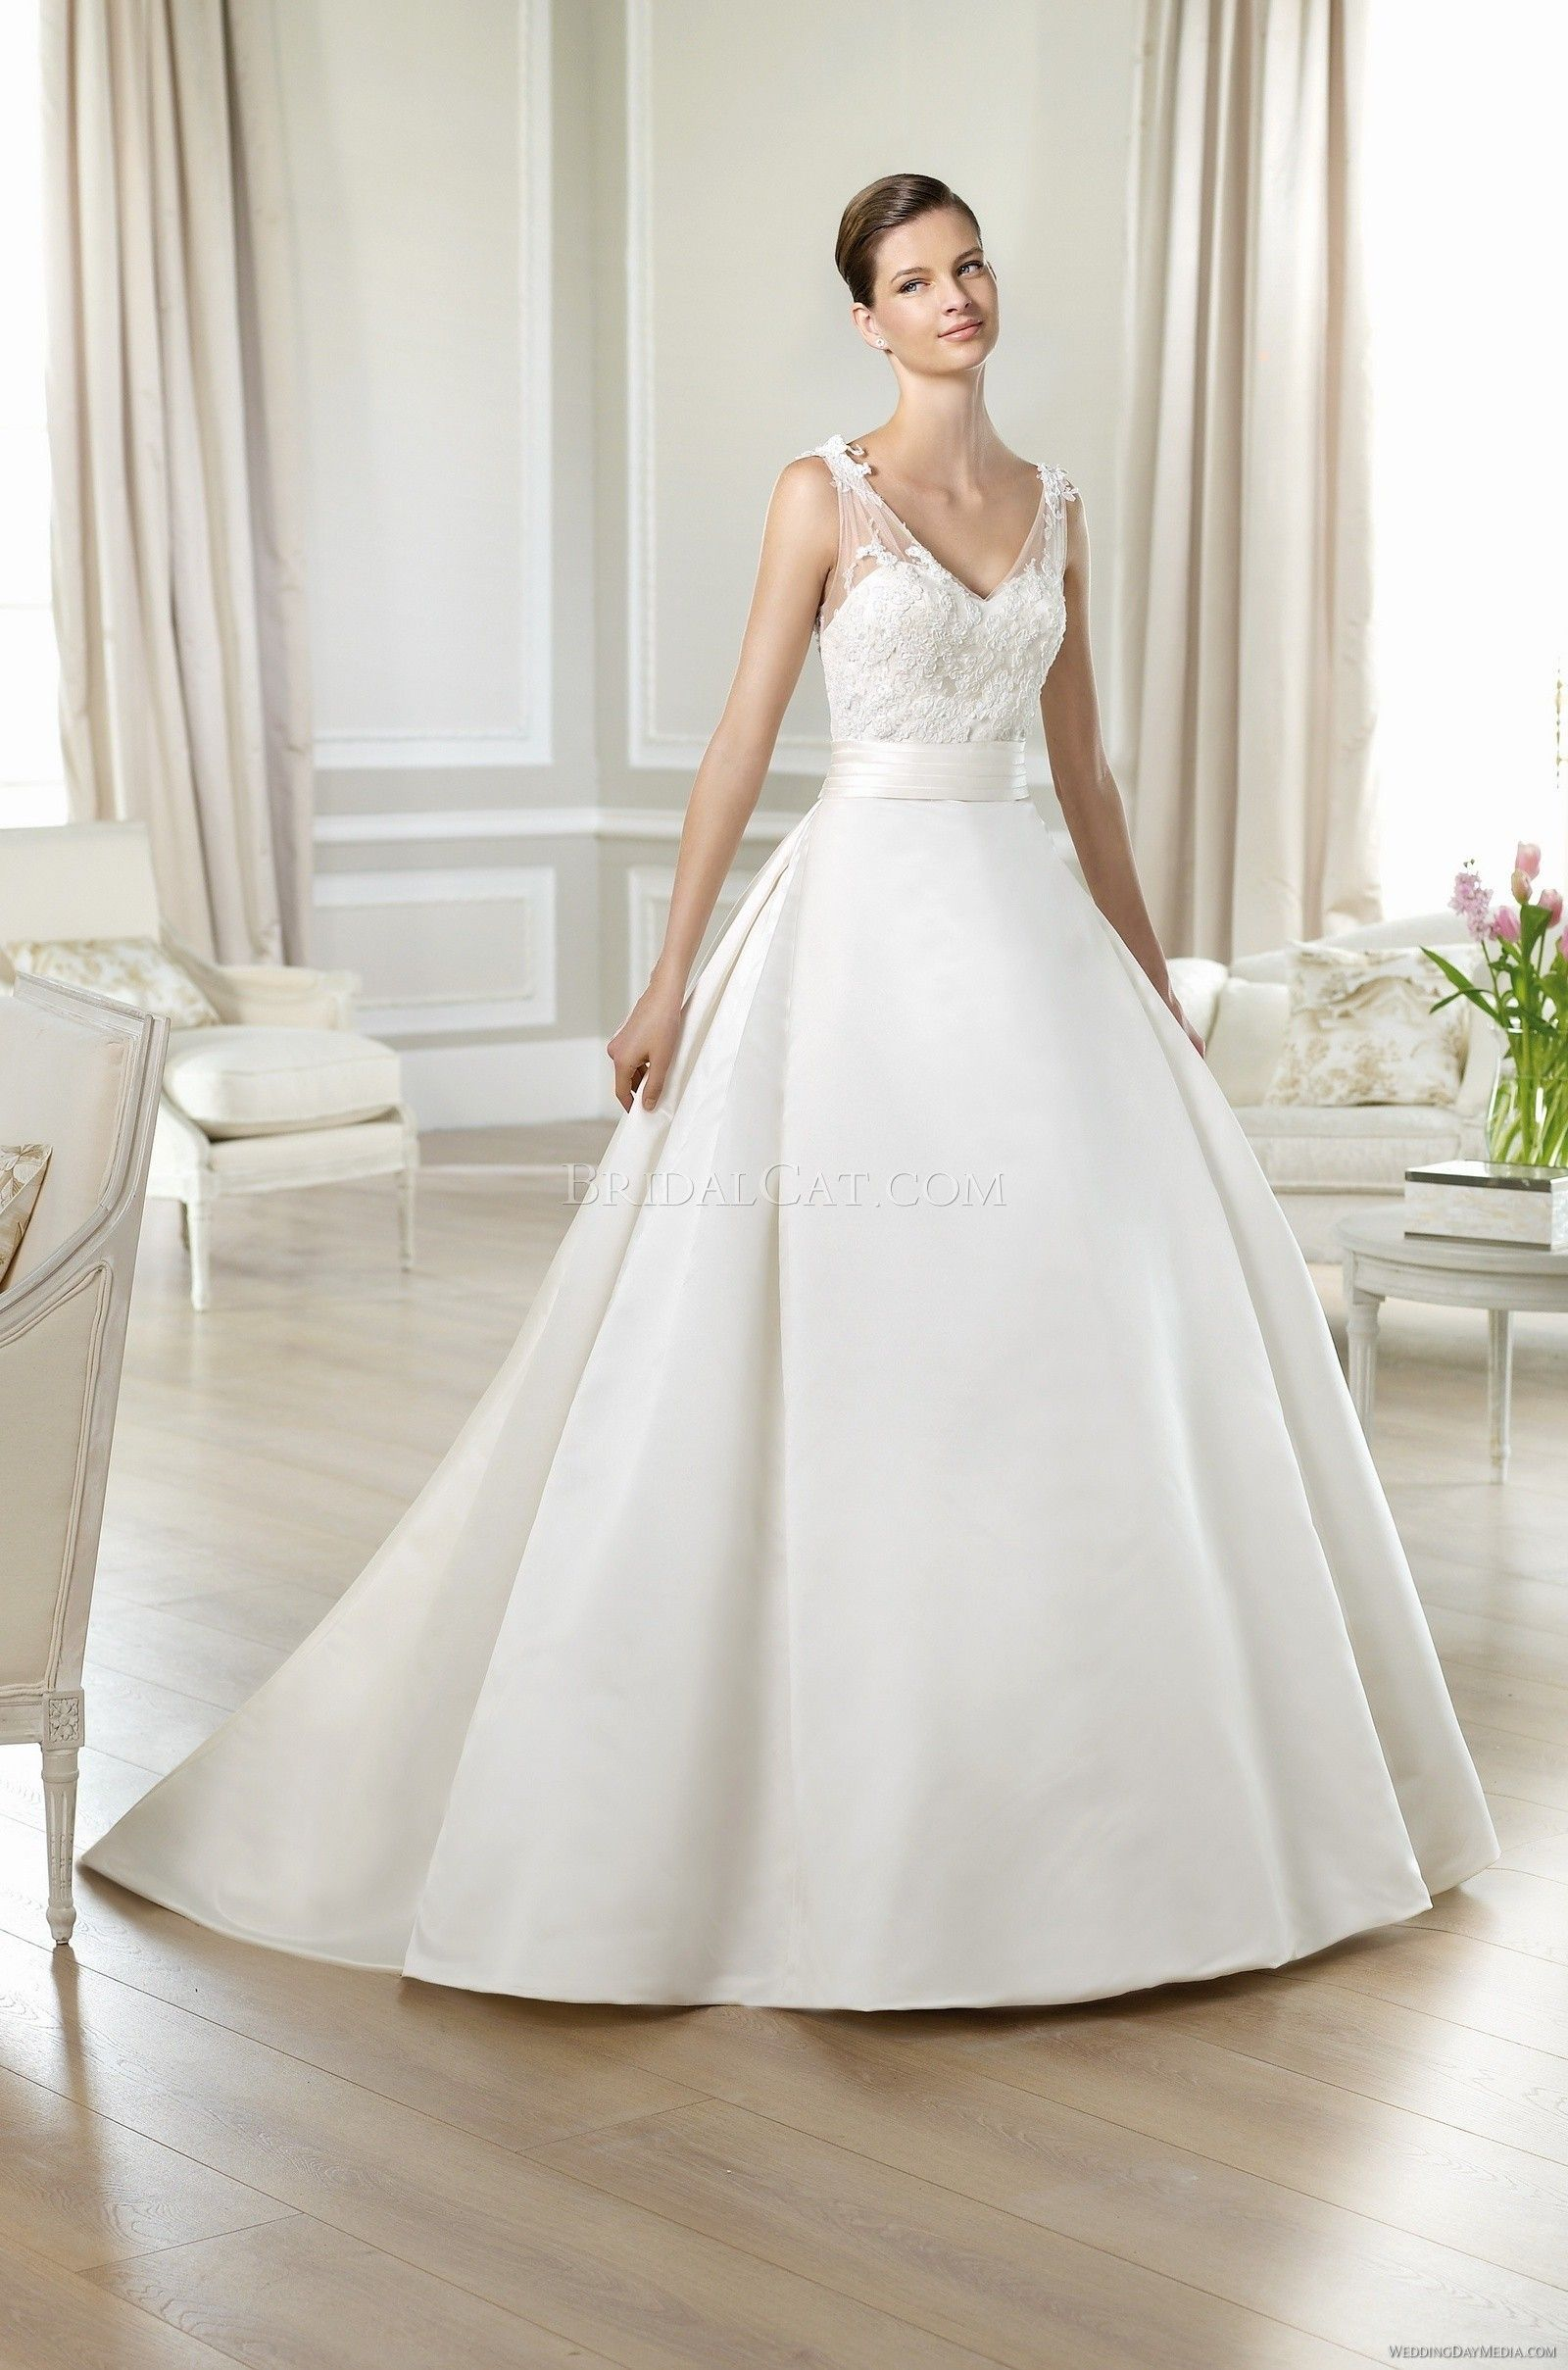 f7320f07006 Wedding dress White One Janice 2014 - AllWeddingDresses.co.uk ...